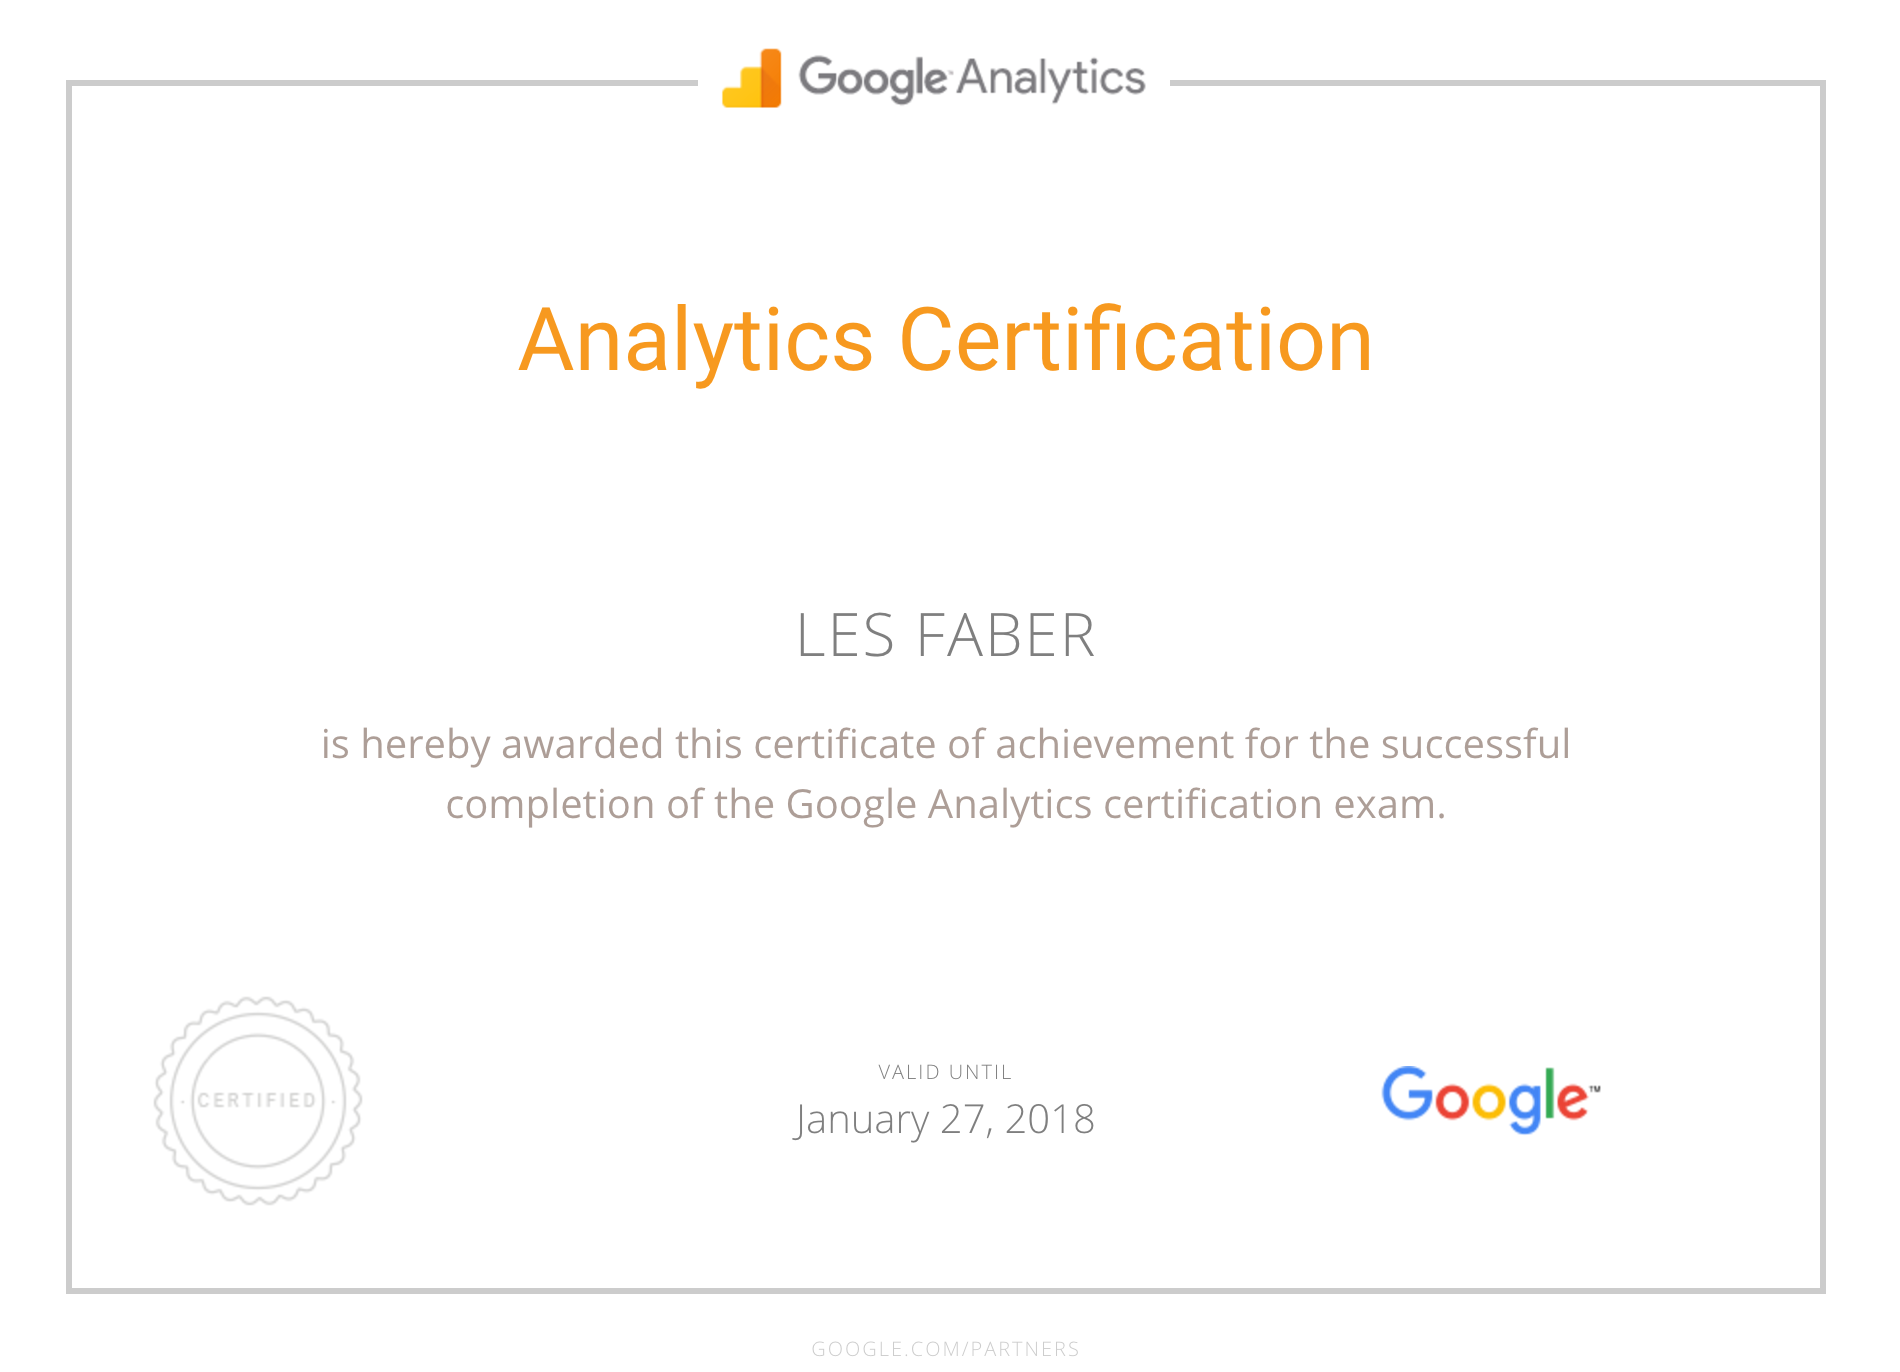 Google Partner - Analytics Certification for Les Faber